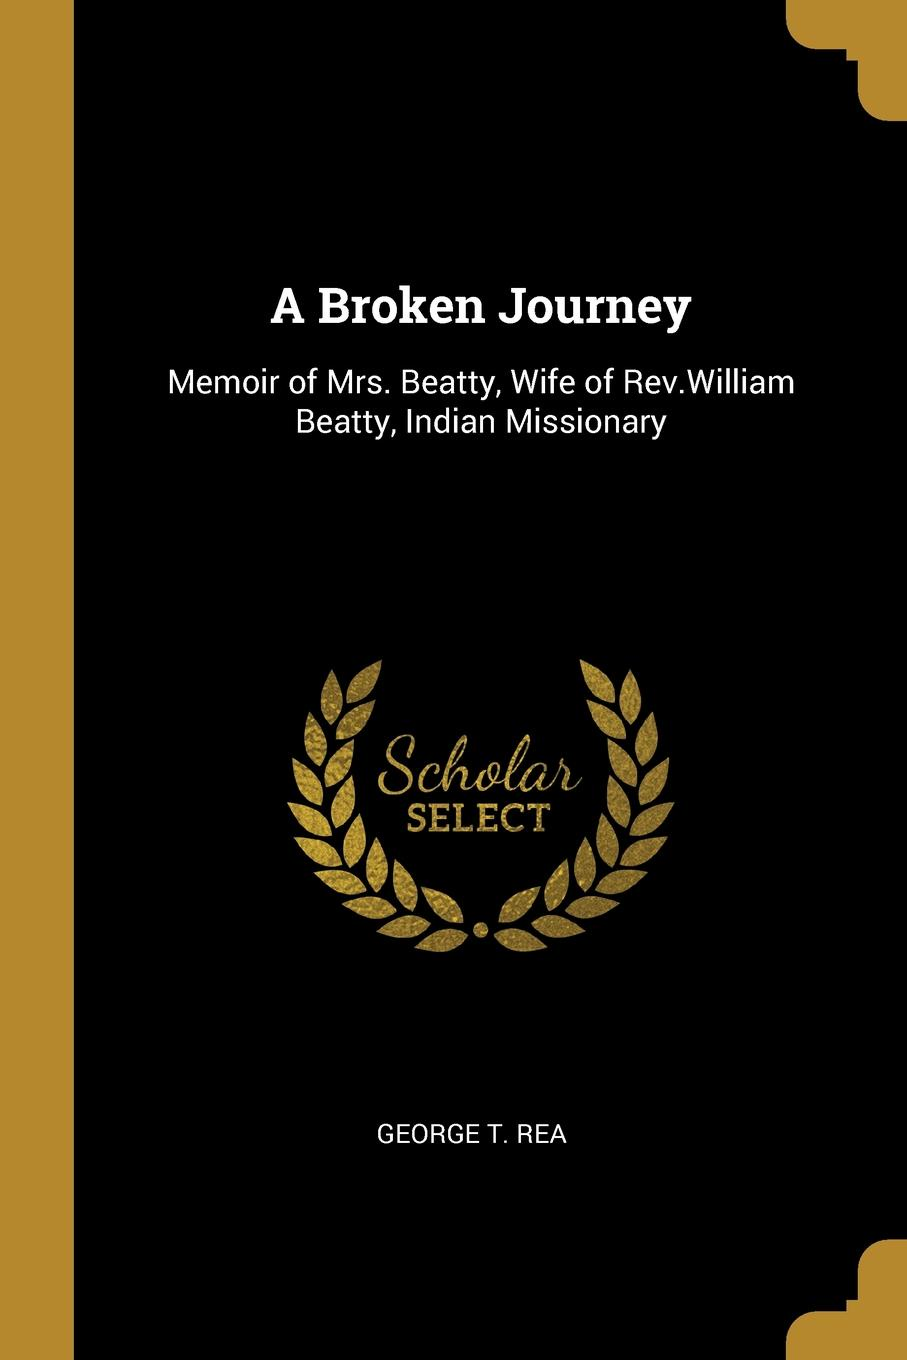 George T. Rea A Broken Journey. Memoir of Mrs. Beatty, Wife of Rev.William Beatty, Indian Missionary